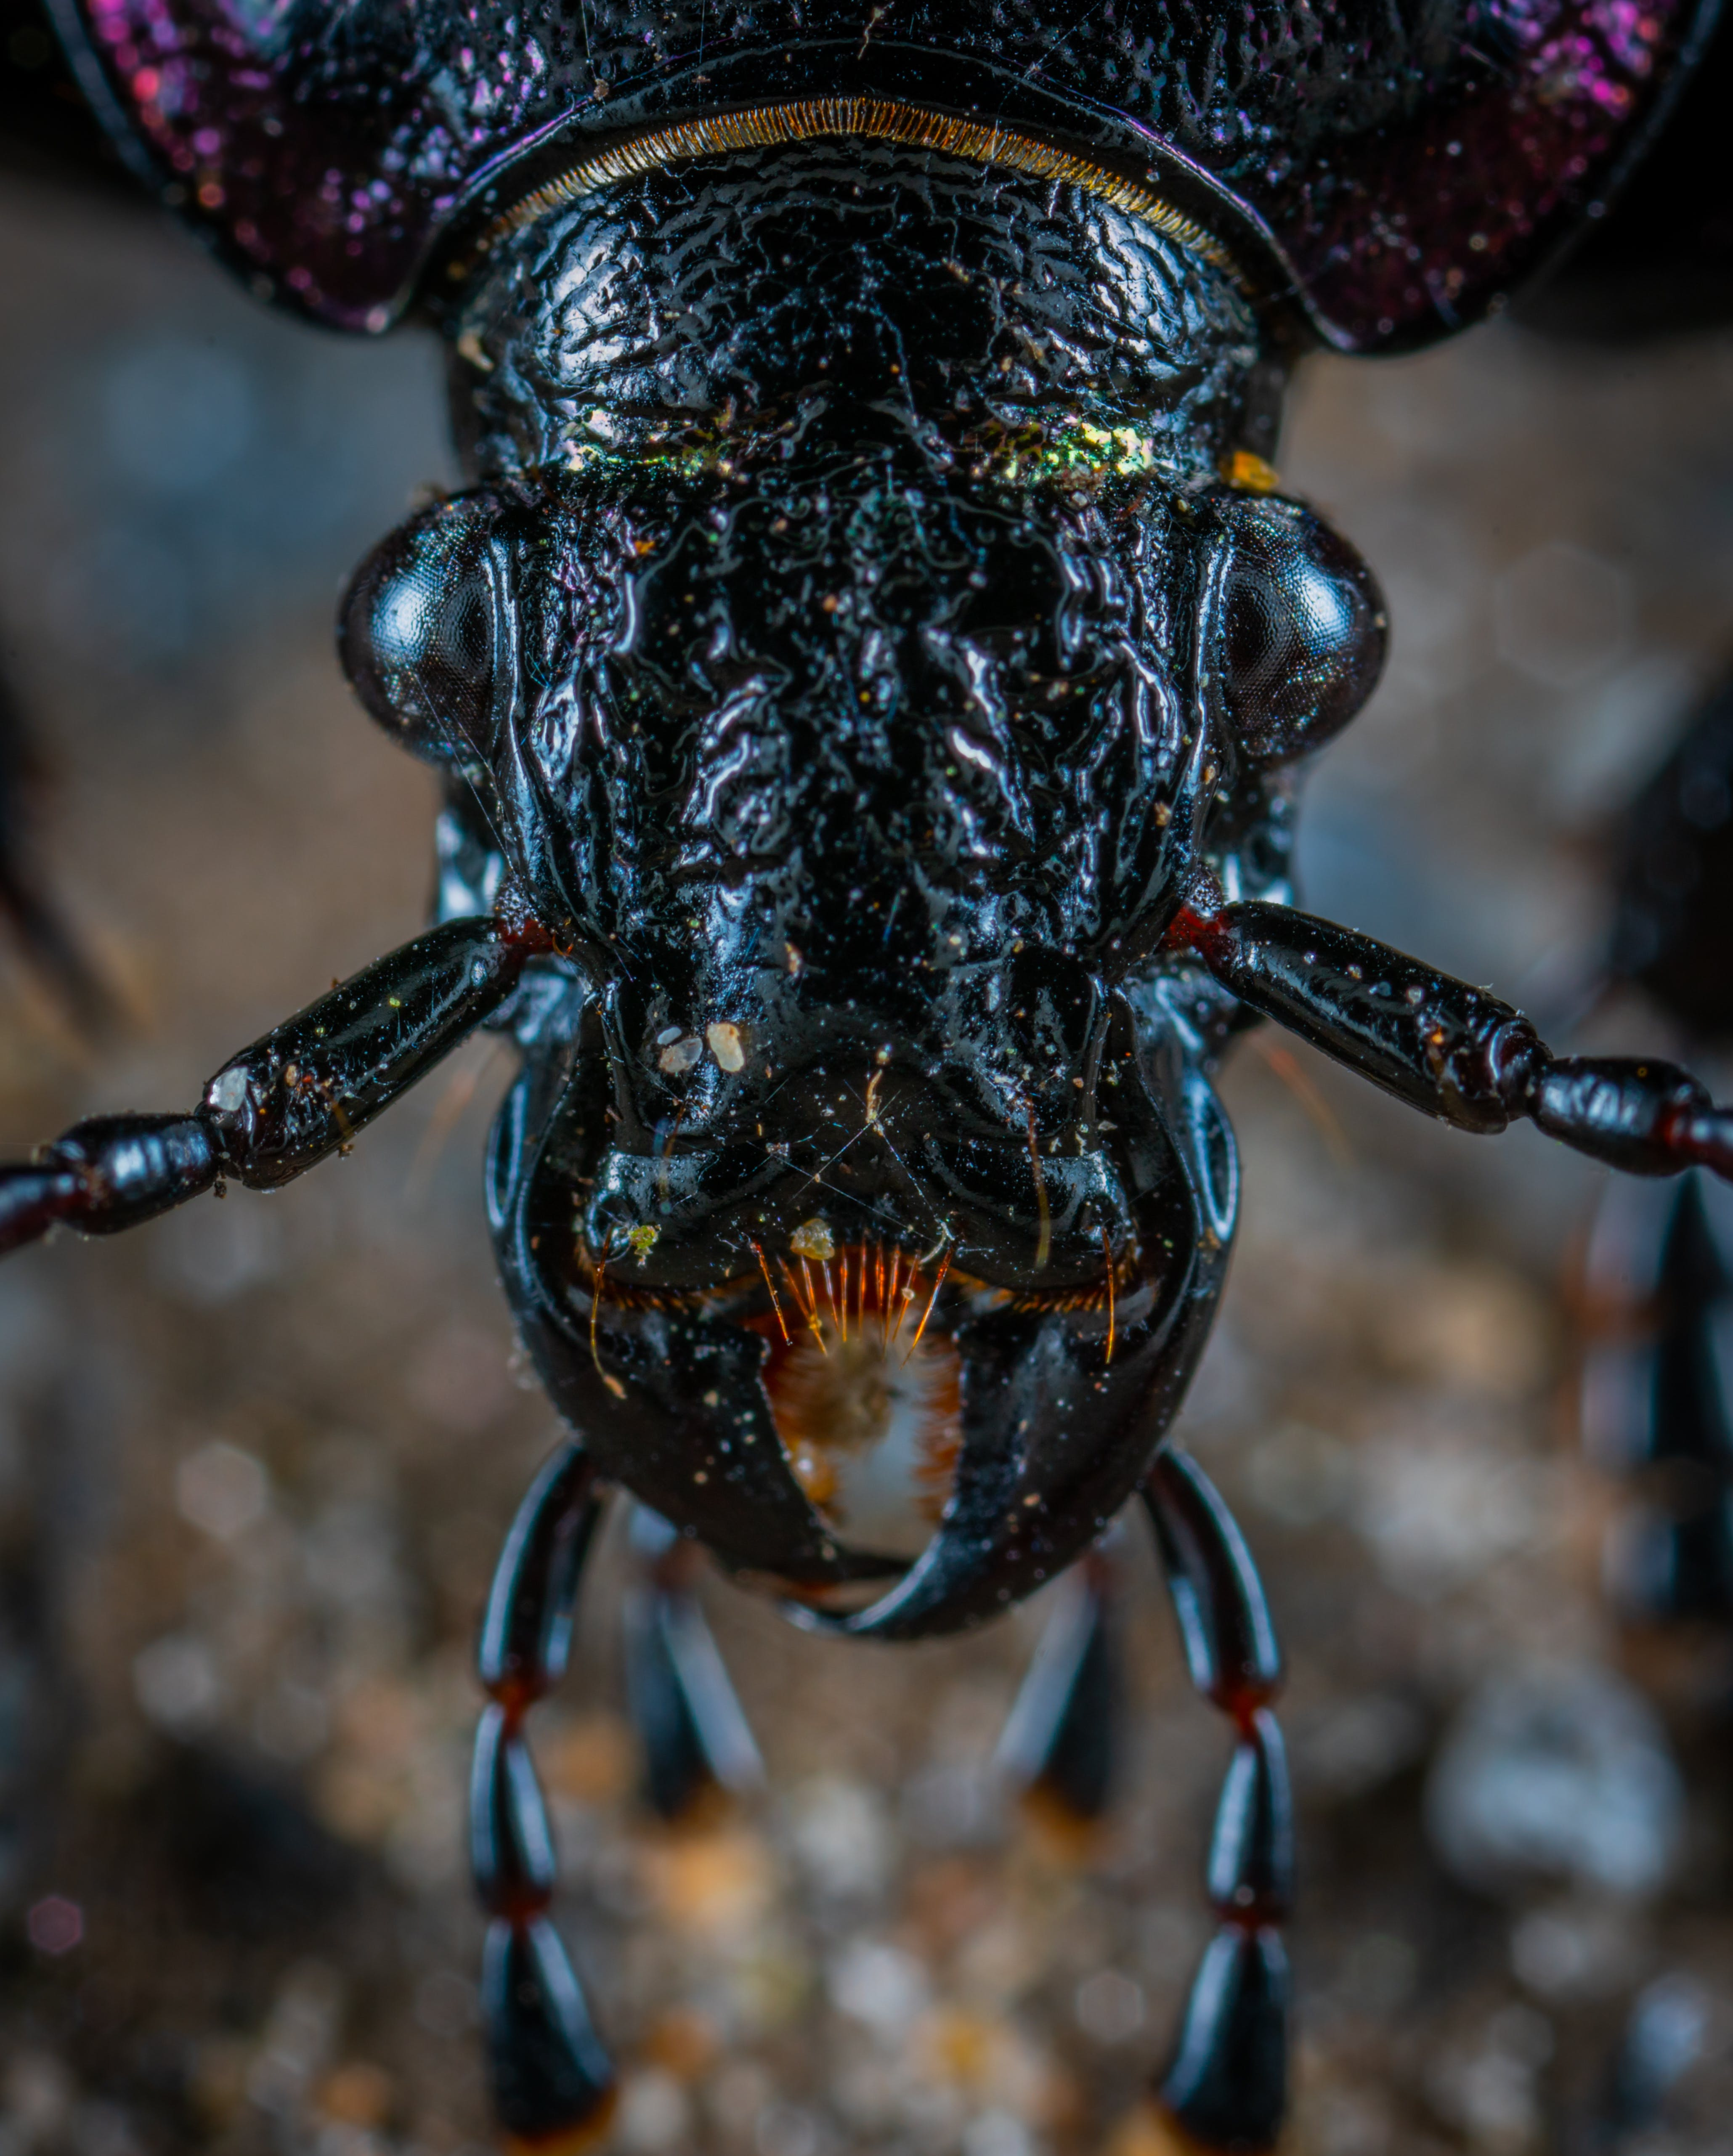 Closeup Photo of Black Insect